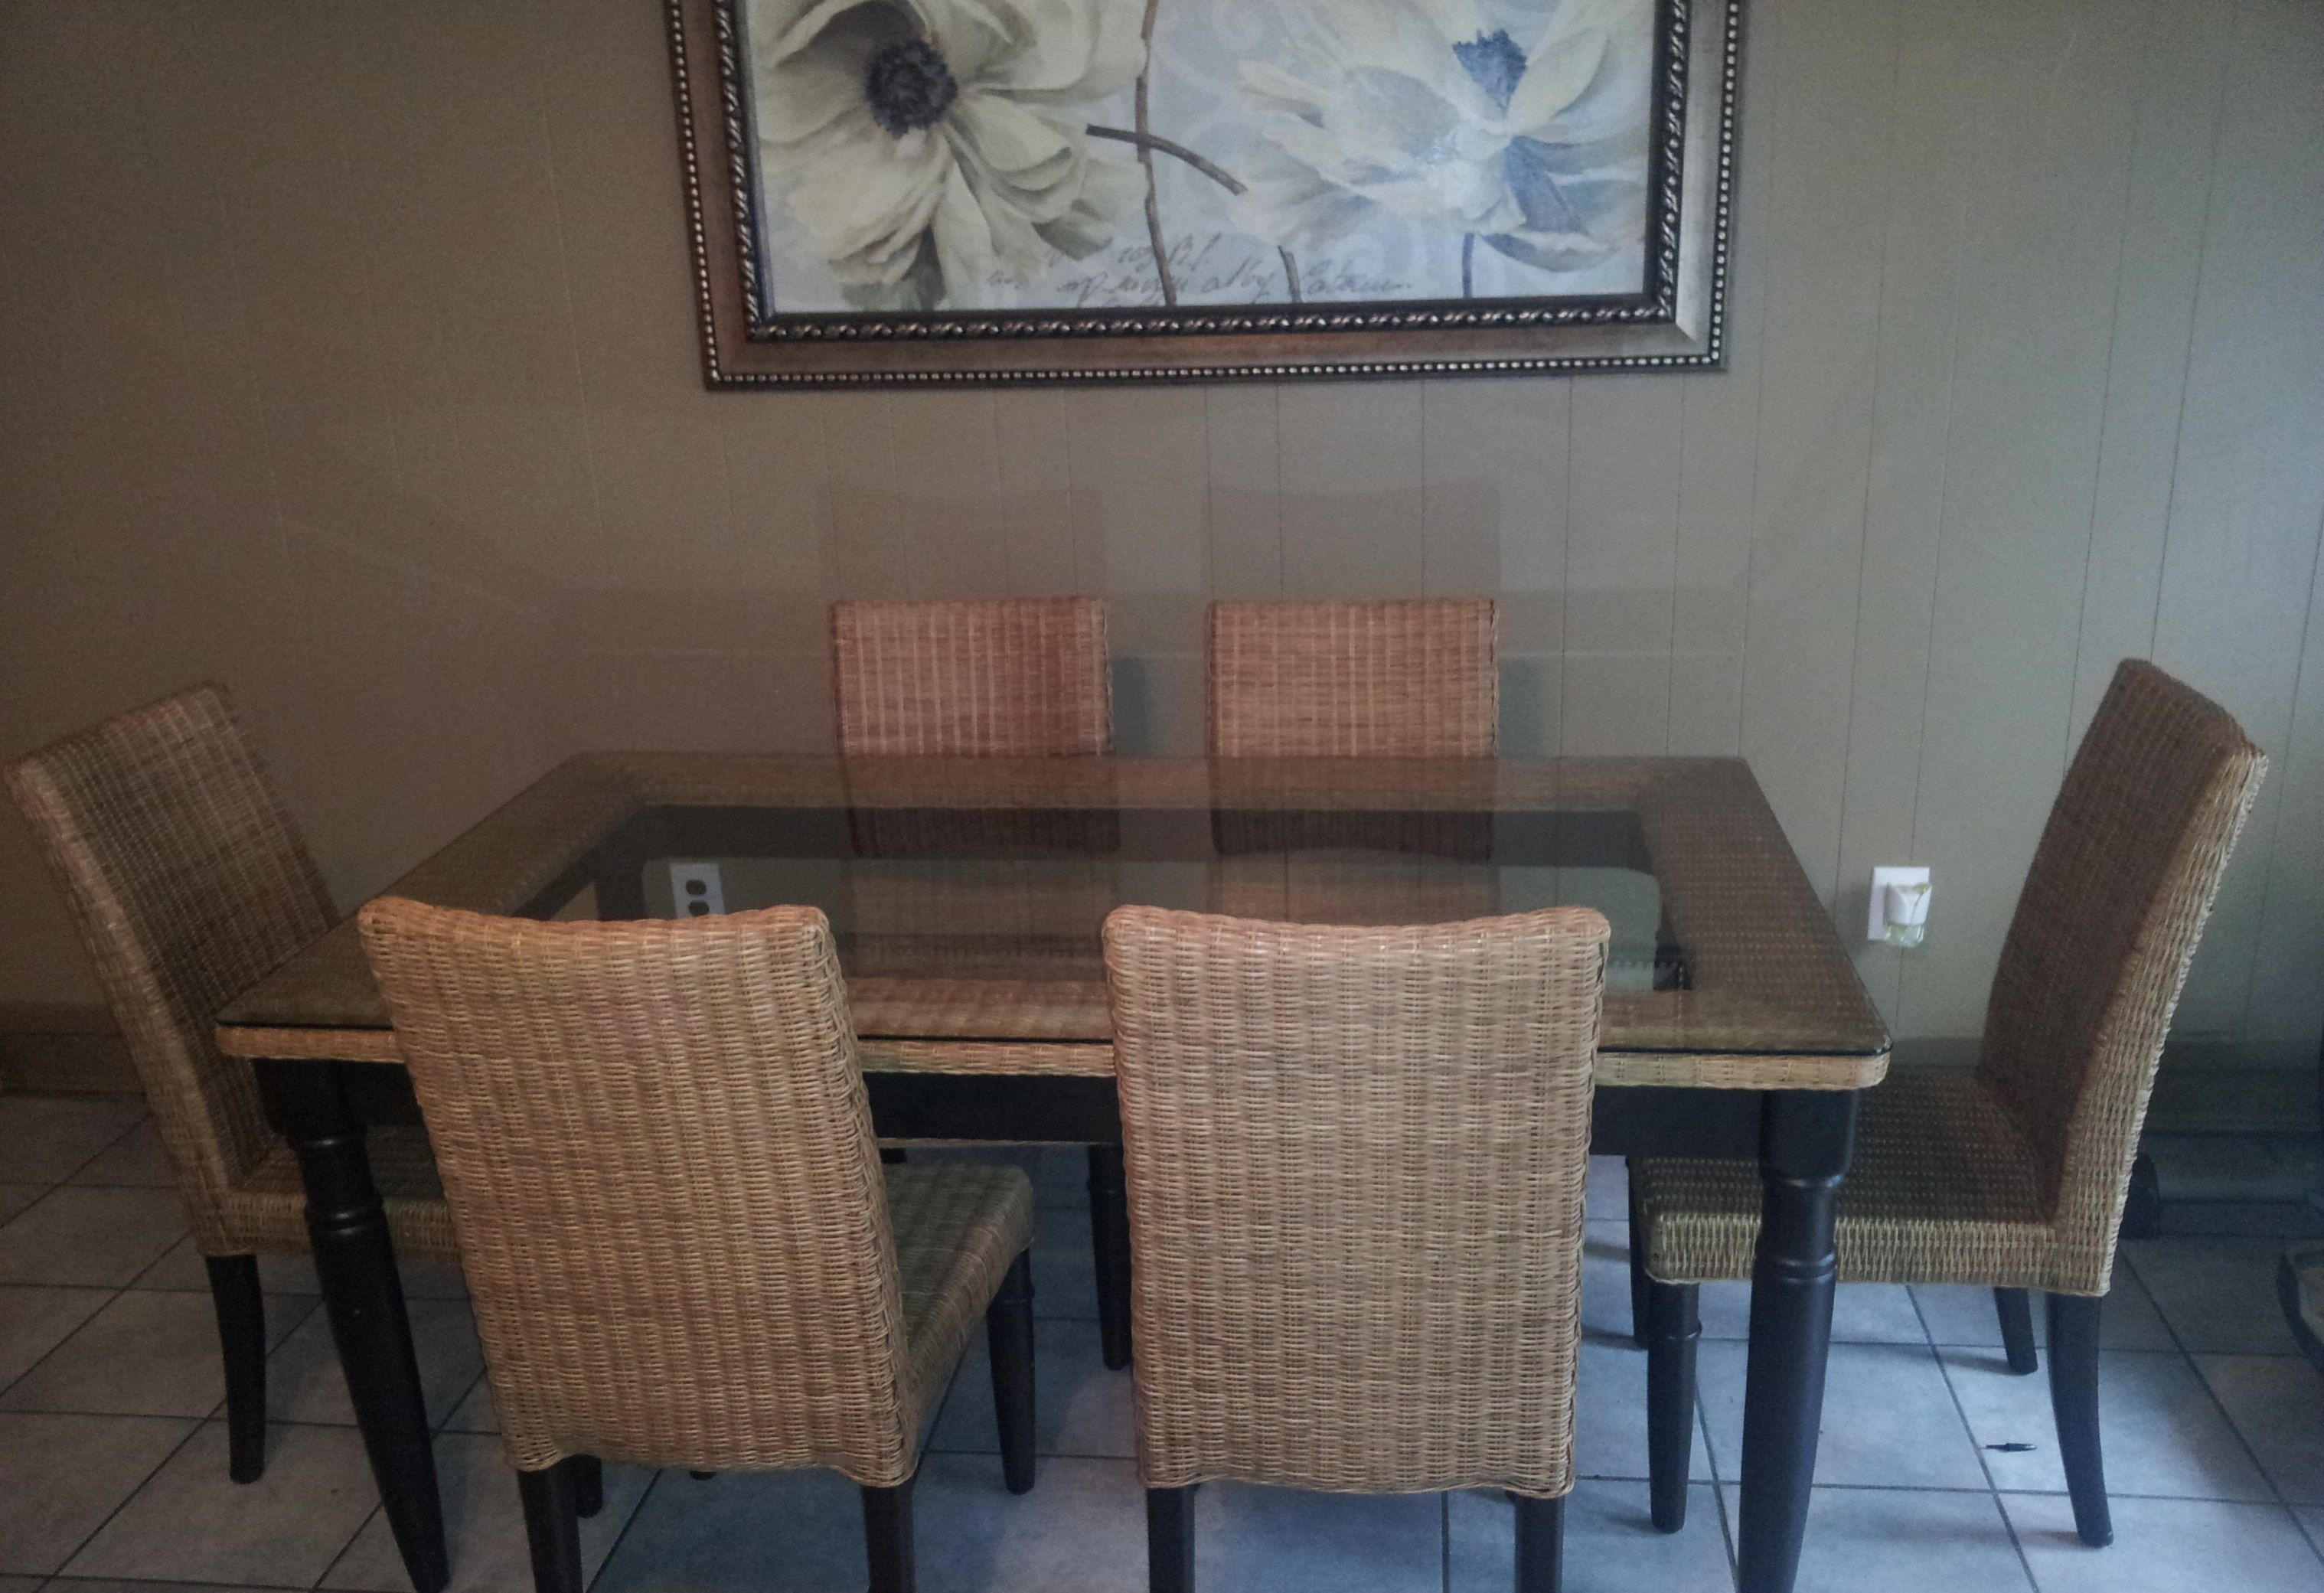 Pier One Glass Top Dining Table Doces Abobrinhas. Pier One Glass Dining Room Table   Barclaydouglas